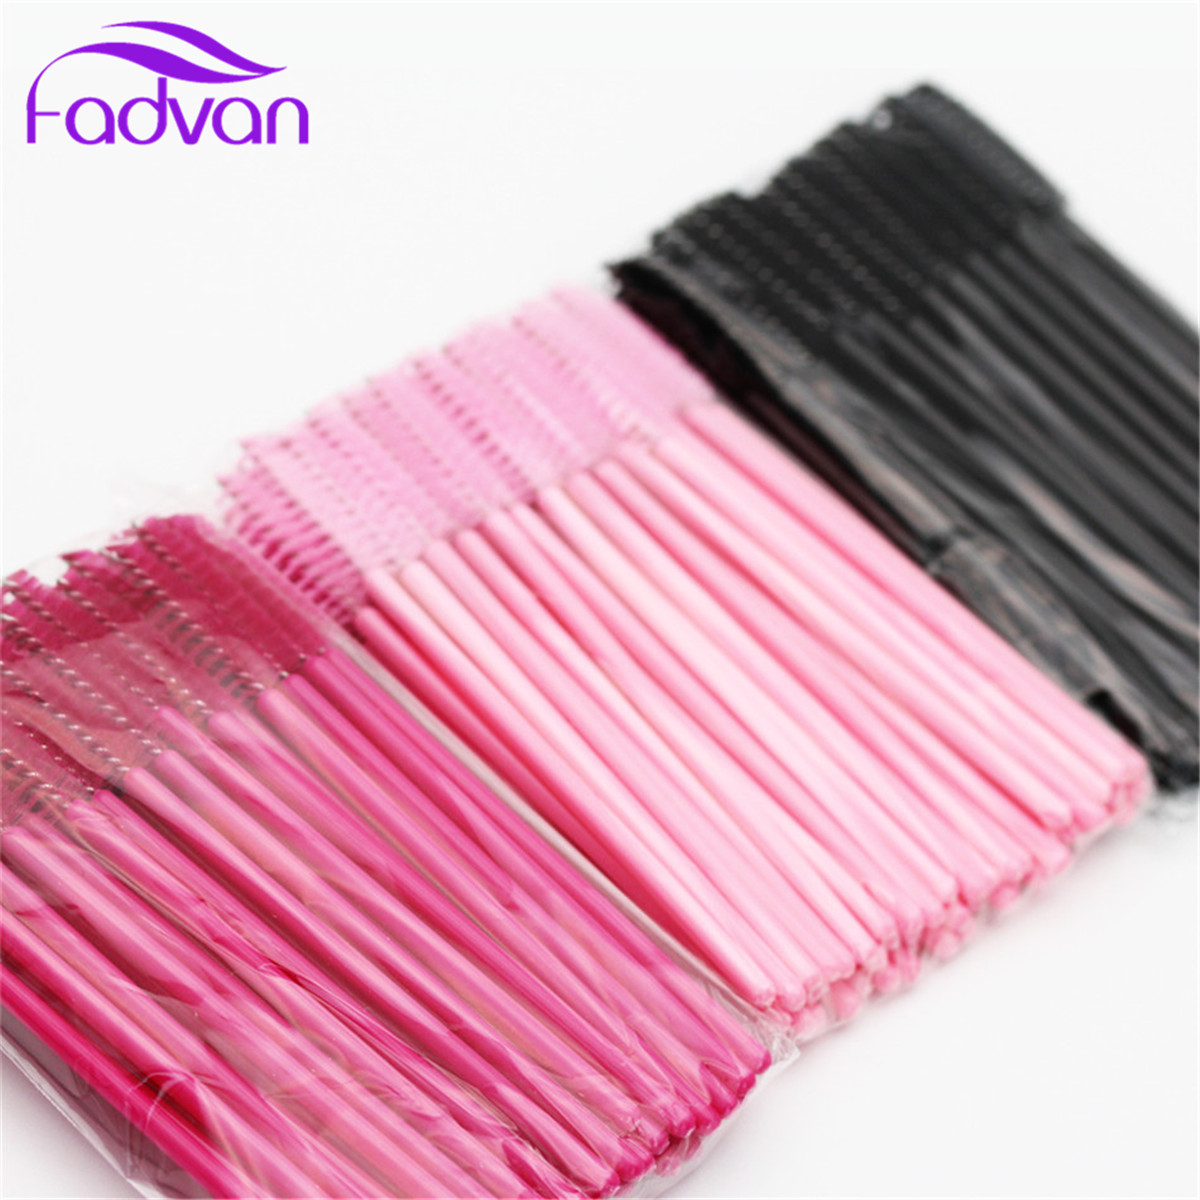 New 100 Pcs/Set Disposable Eyelash Brush Mascara Wands Applicator Spoolers Eye Lashes Eyebrow Brush Eyelash Brush Long Six Color приставка рейсмусовая белмаш td2500